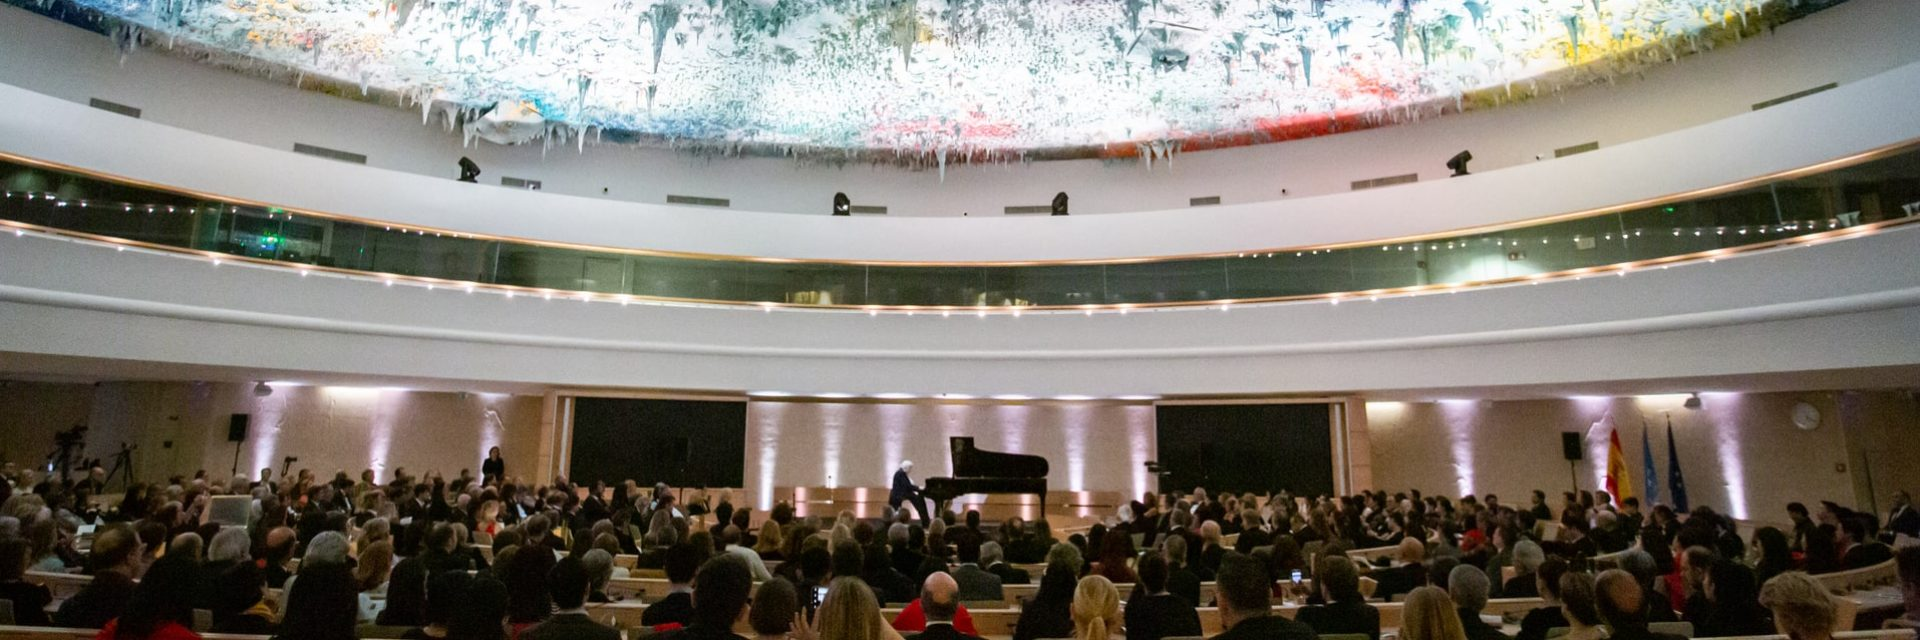 <h2>THE WORLD HUMAN RIGHTS CONCERT 2020 - 7th EDITION</h2>